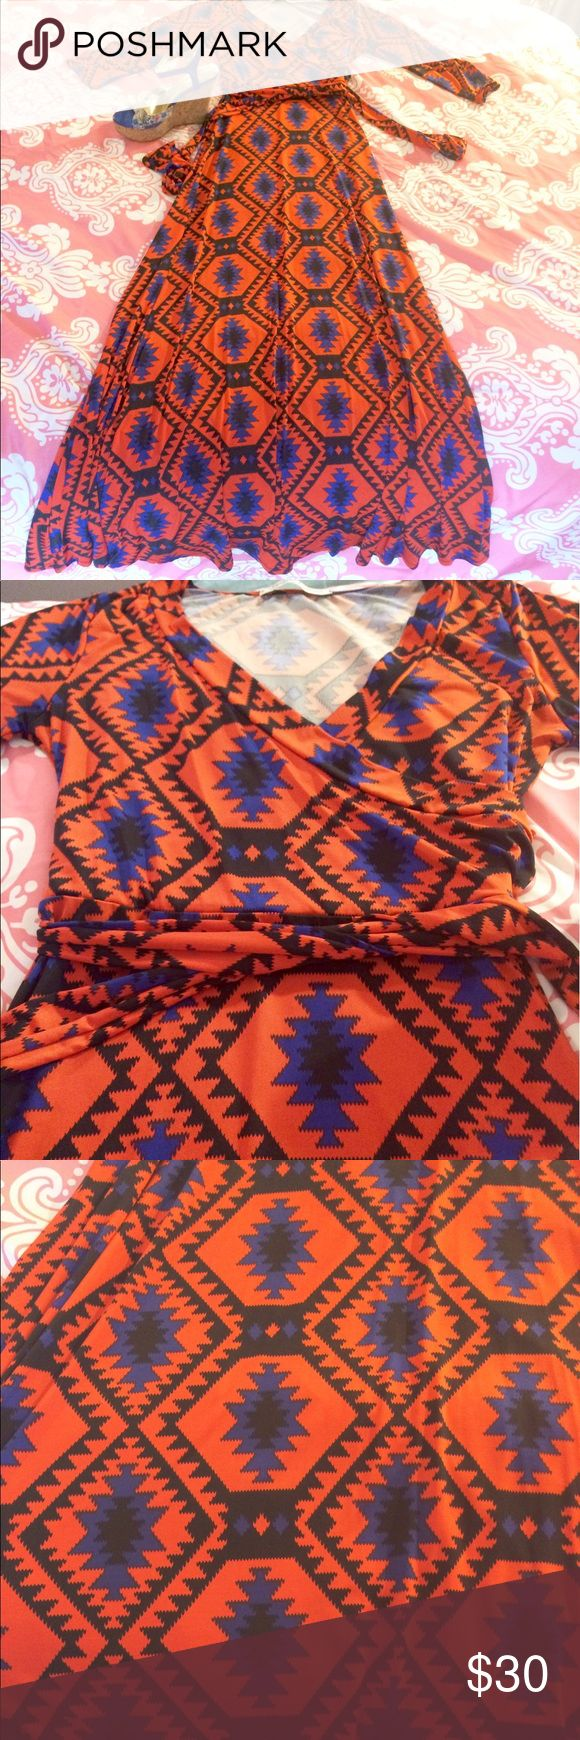 ☄️Bold and Bright Maxi Wrap dress💧🔥 Orange, blue and black maxi wrap dress☄️💧🌑 Great for any occasion and super COMFY!😋 slightly worn 😘 Open to offers🔥🔥 Dresses Maxi